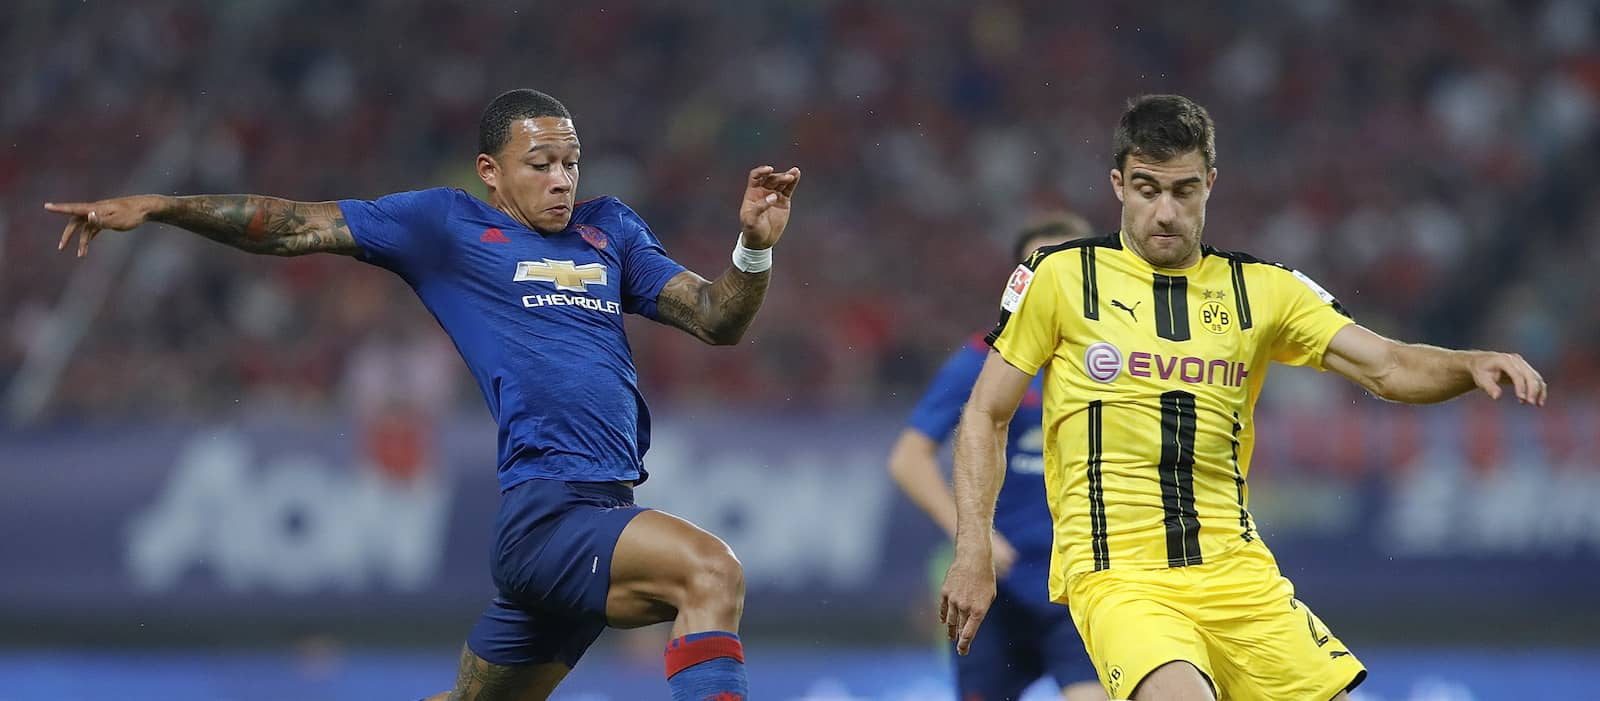 Ronald Koeman admits Southampton tried to sign Memphis Depay